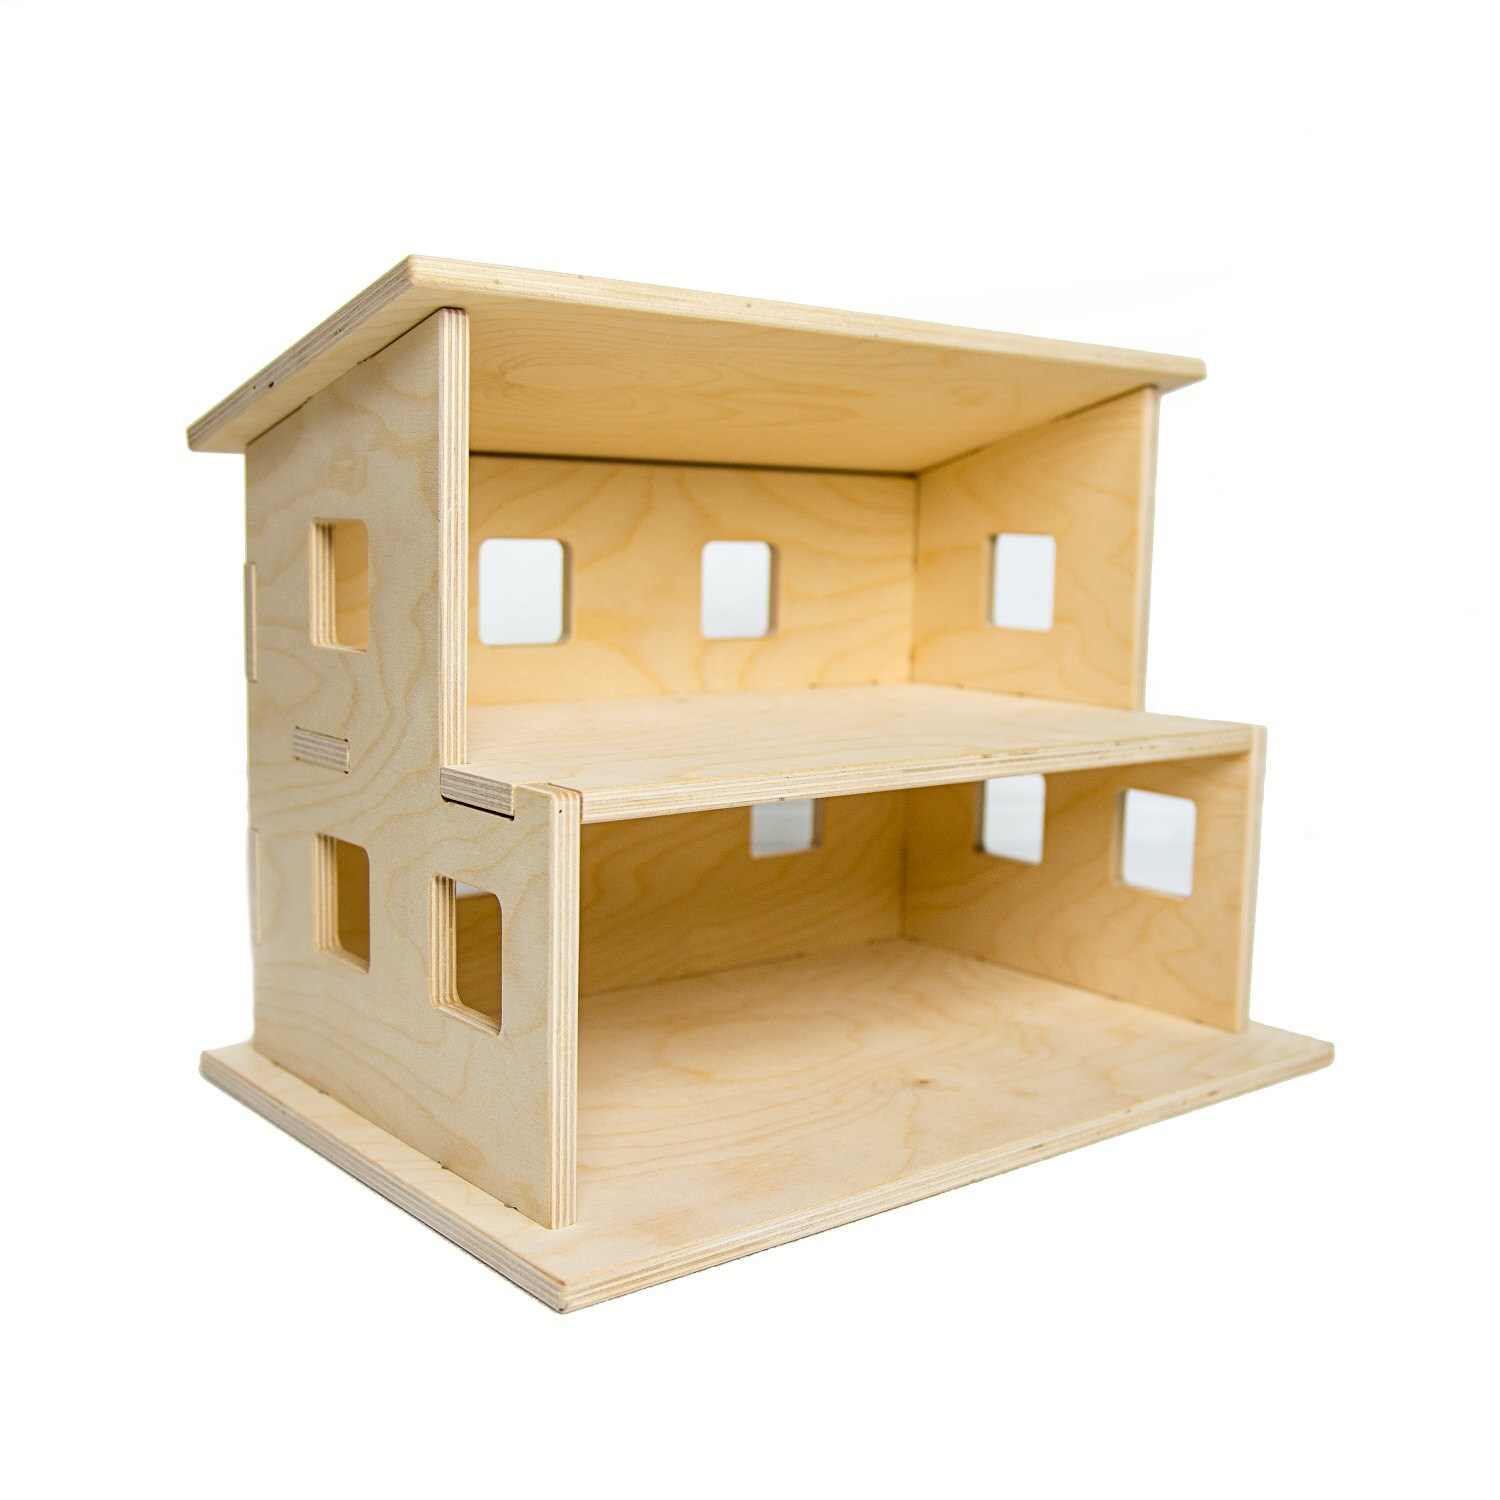 How To Paint Simple Toy Houses